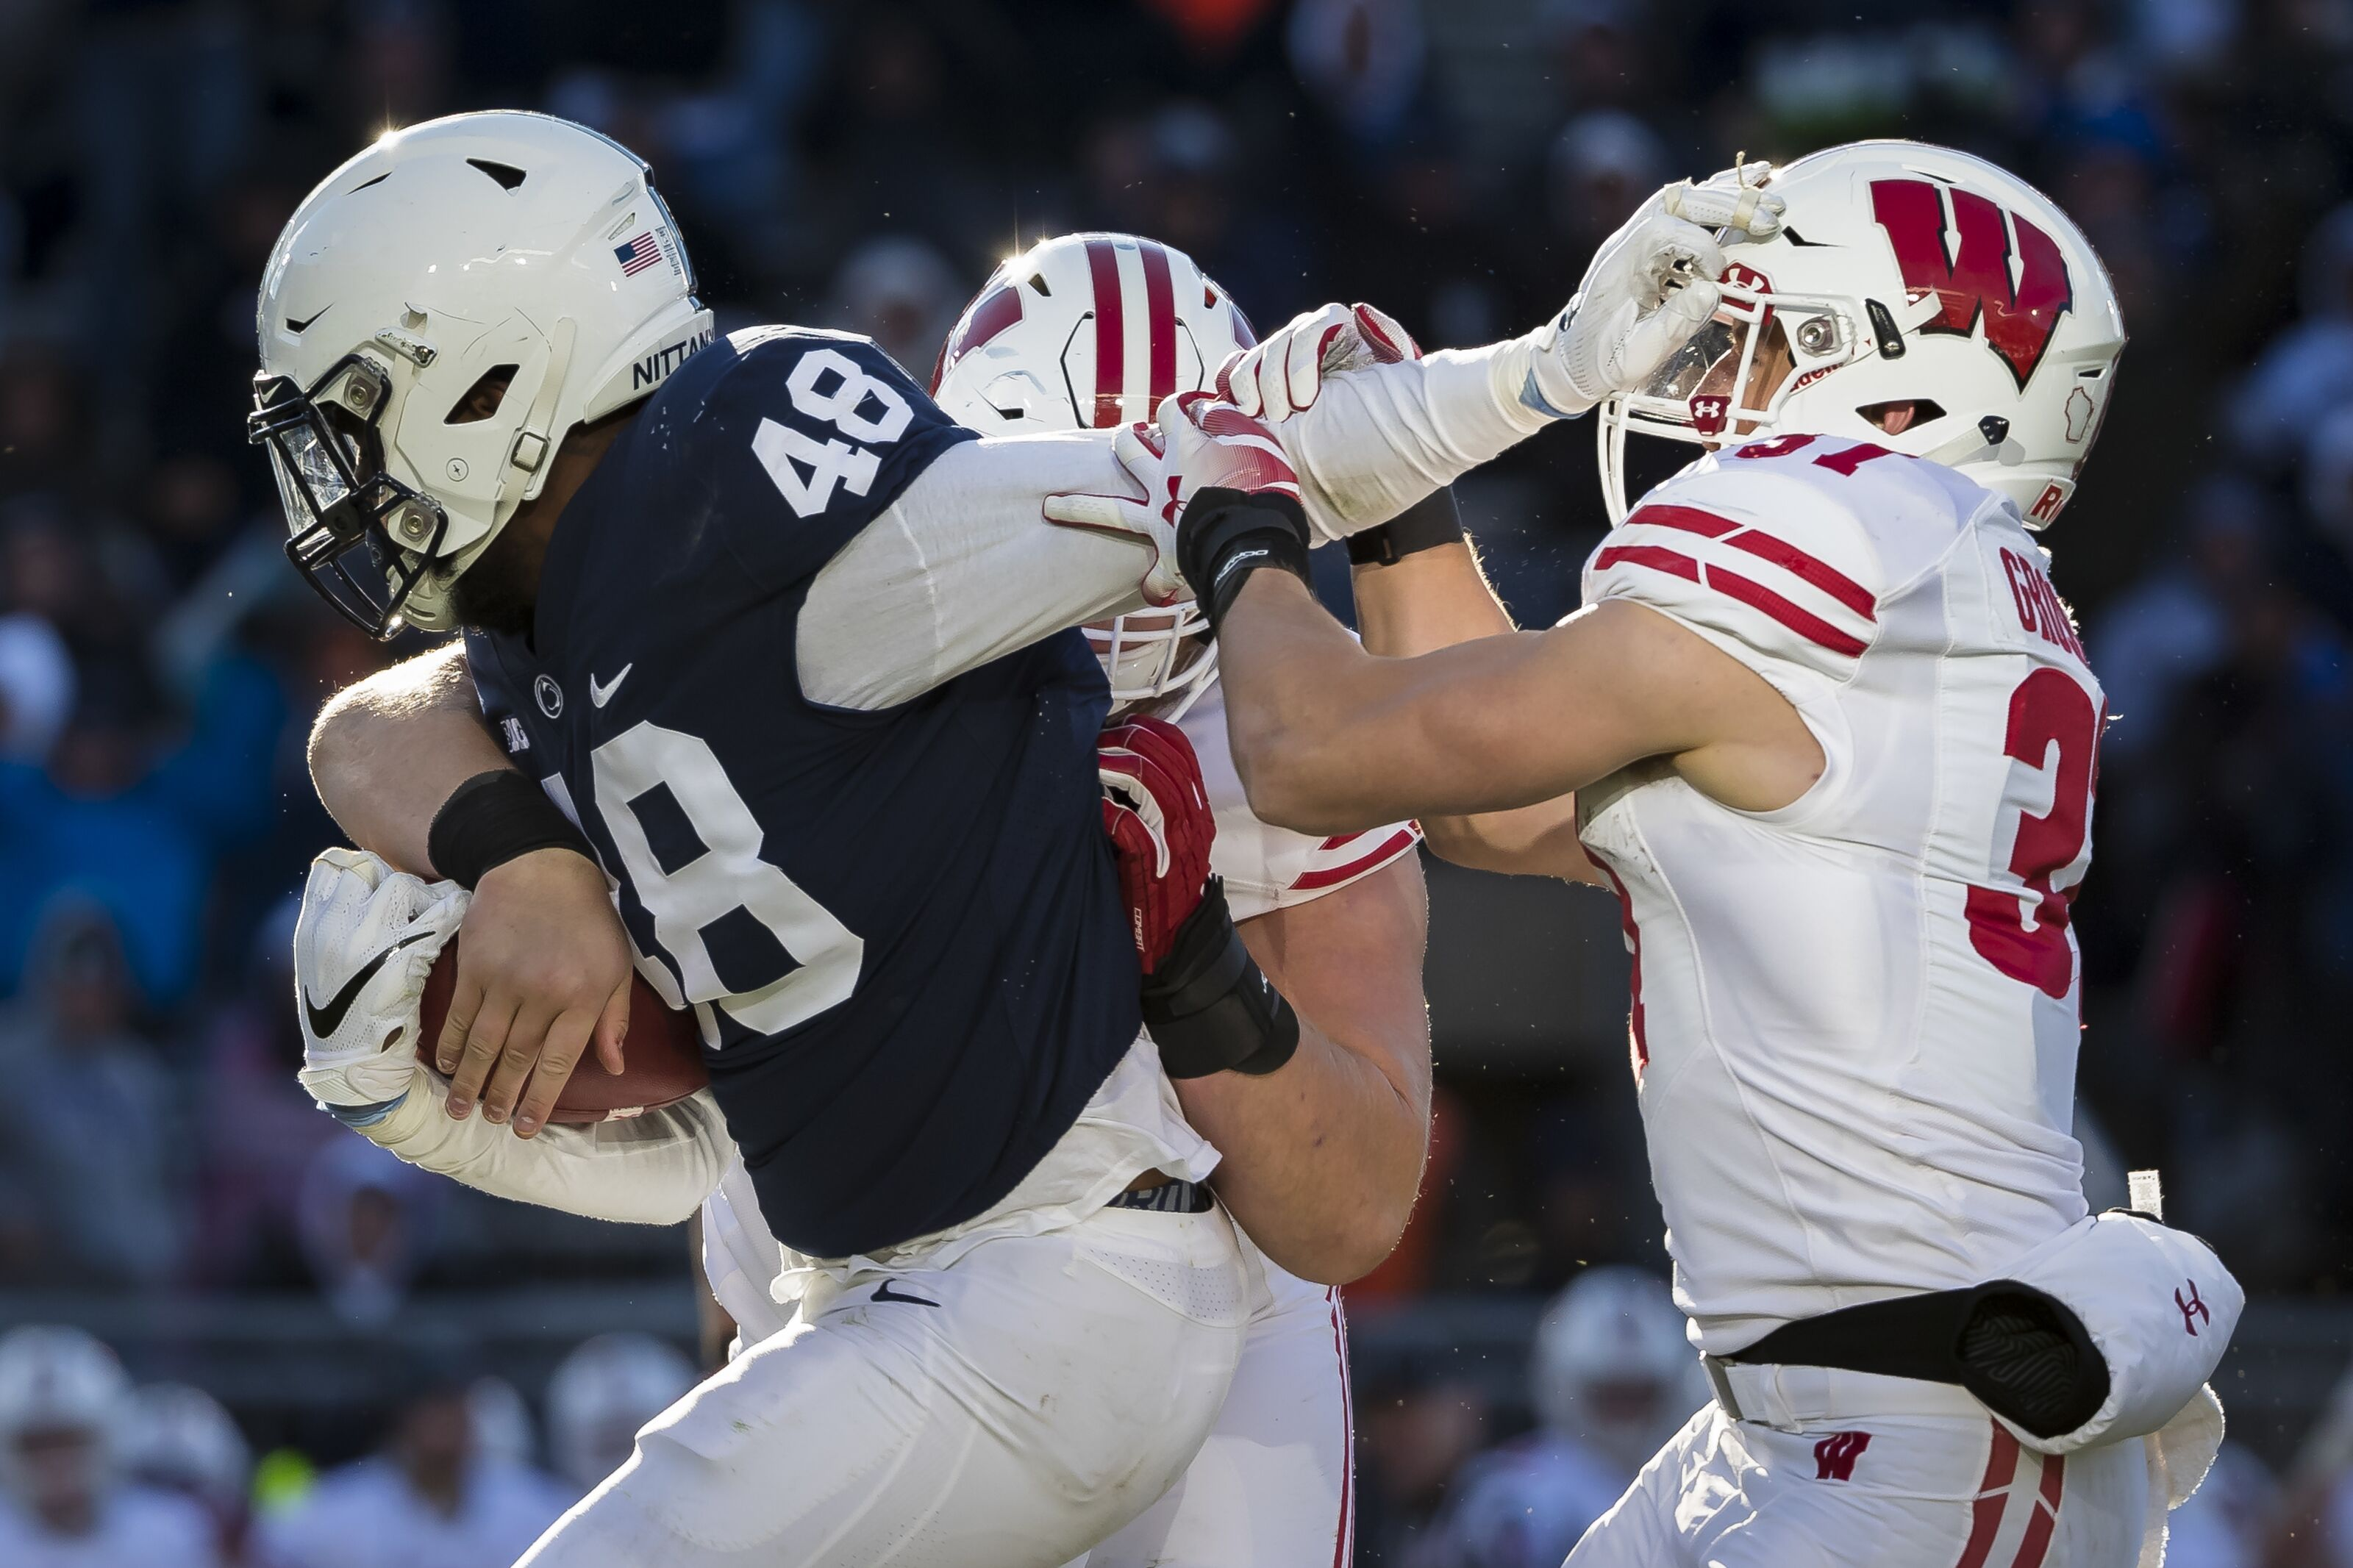 finest selection 85eb6 00ddb Penn State DE Shareef Miller meeting with Saints, late round ...